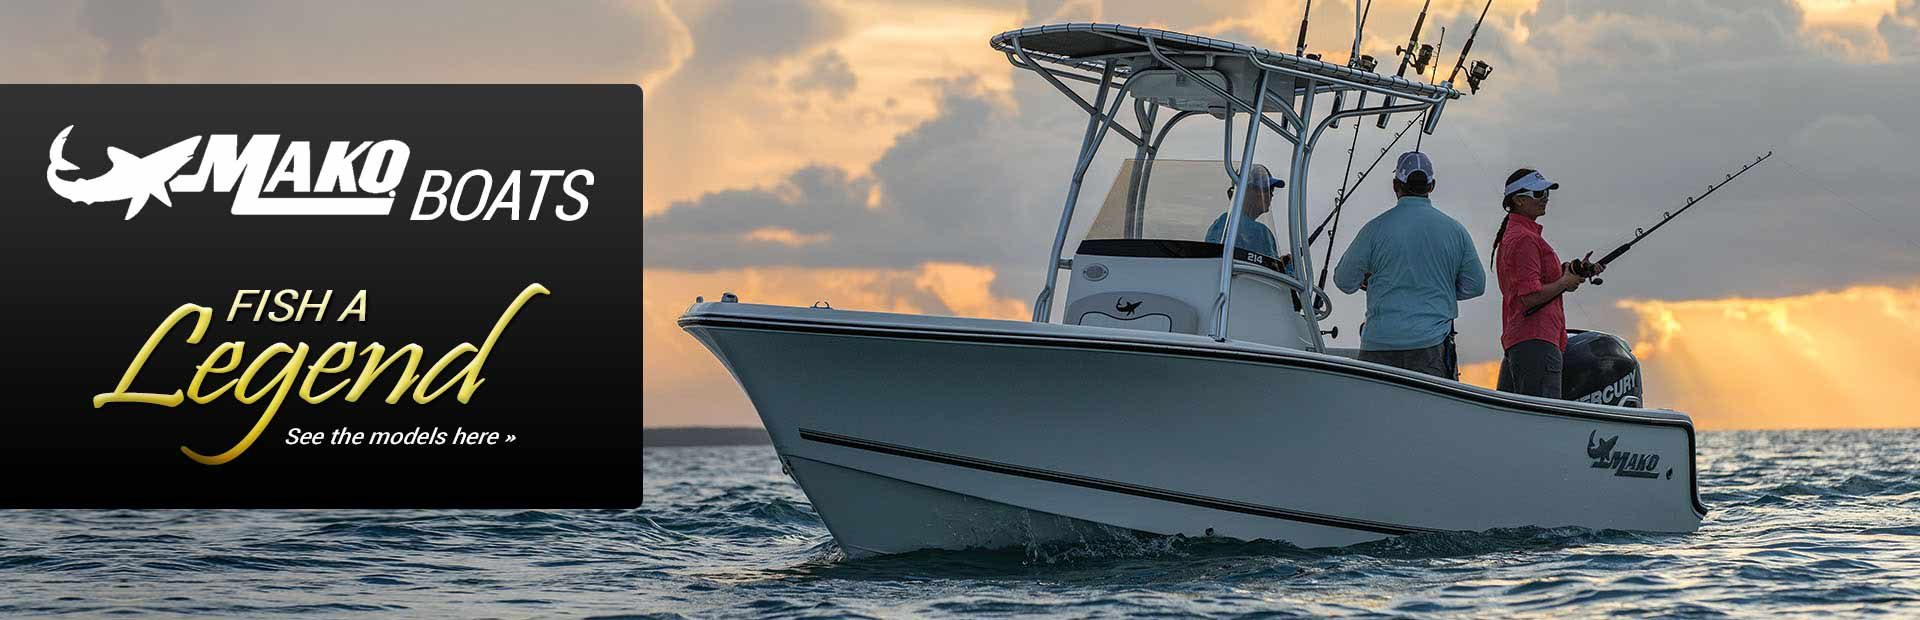 MAKO Boats: Click here to view the models.